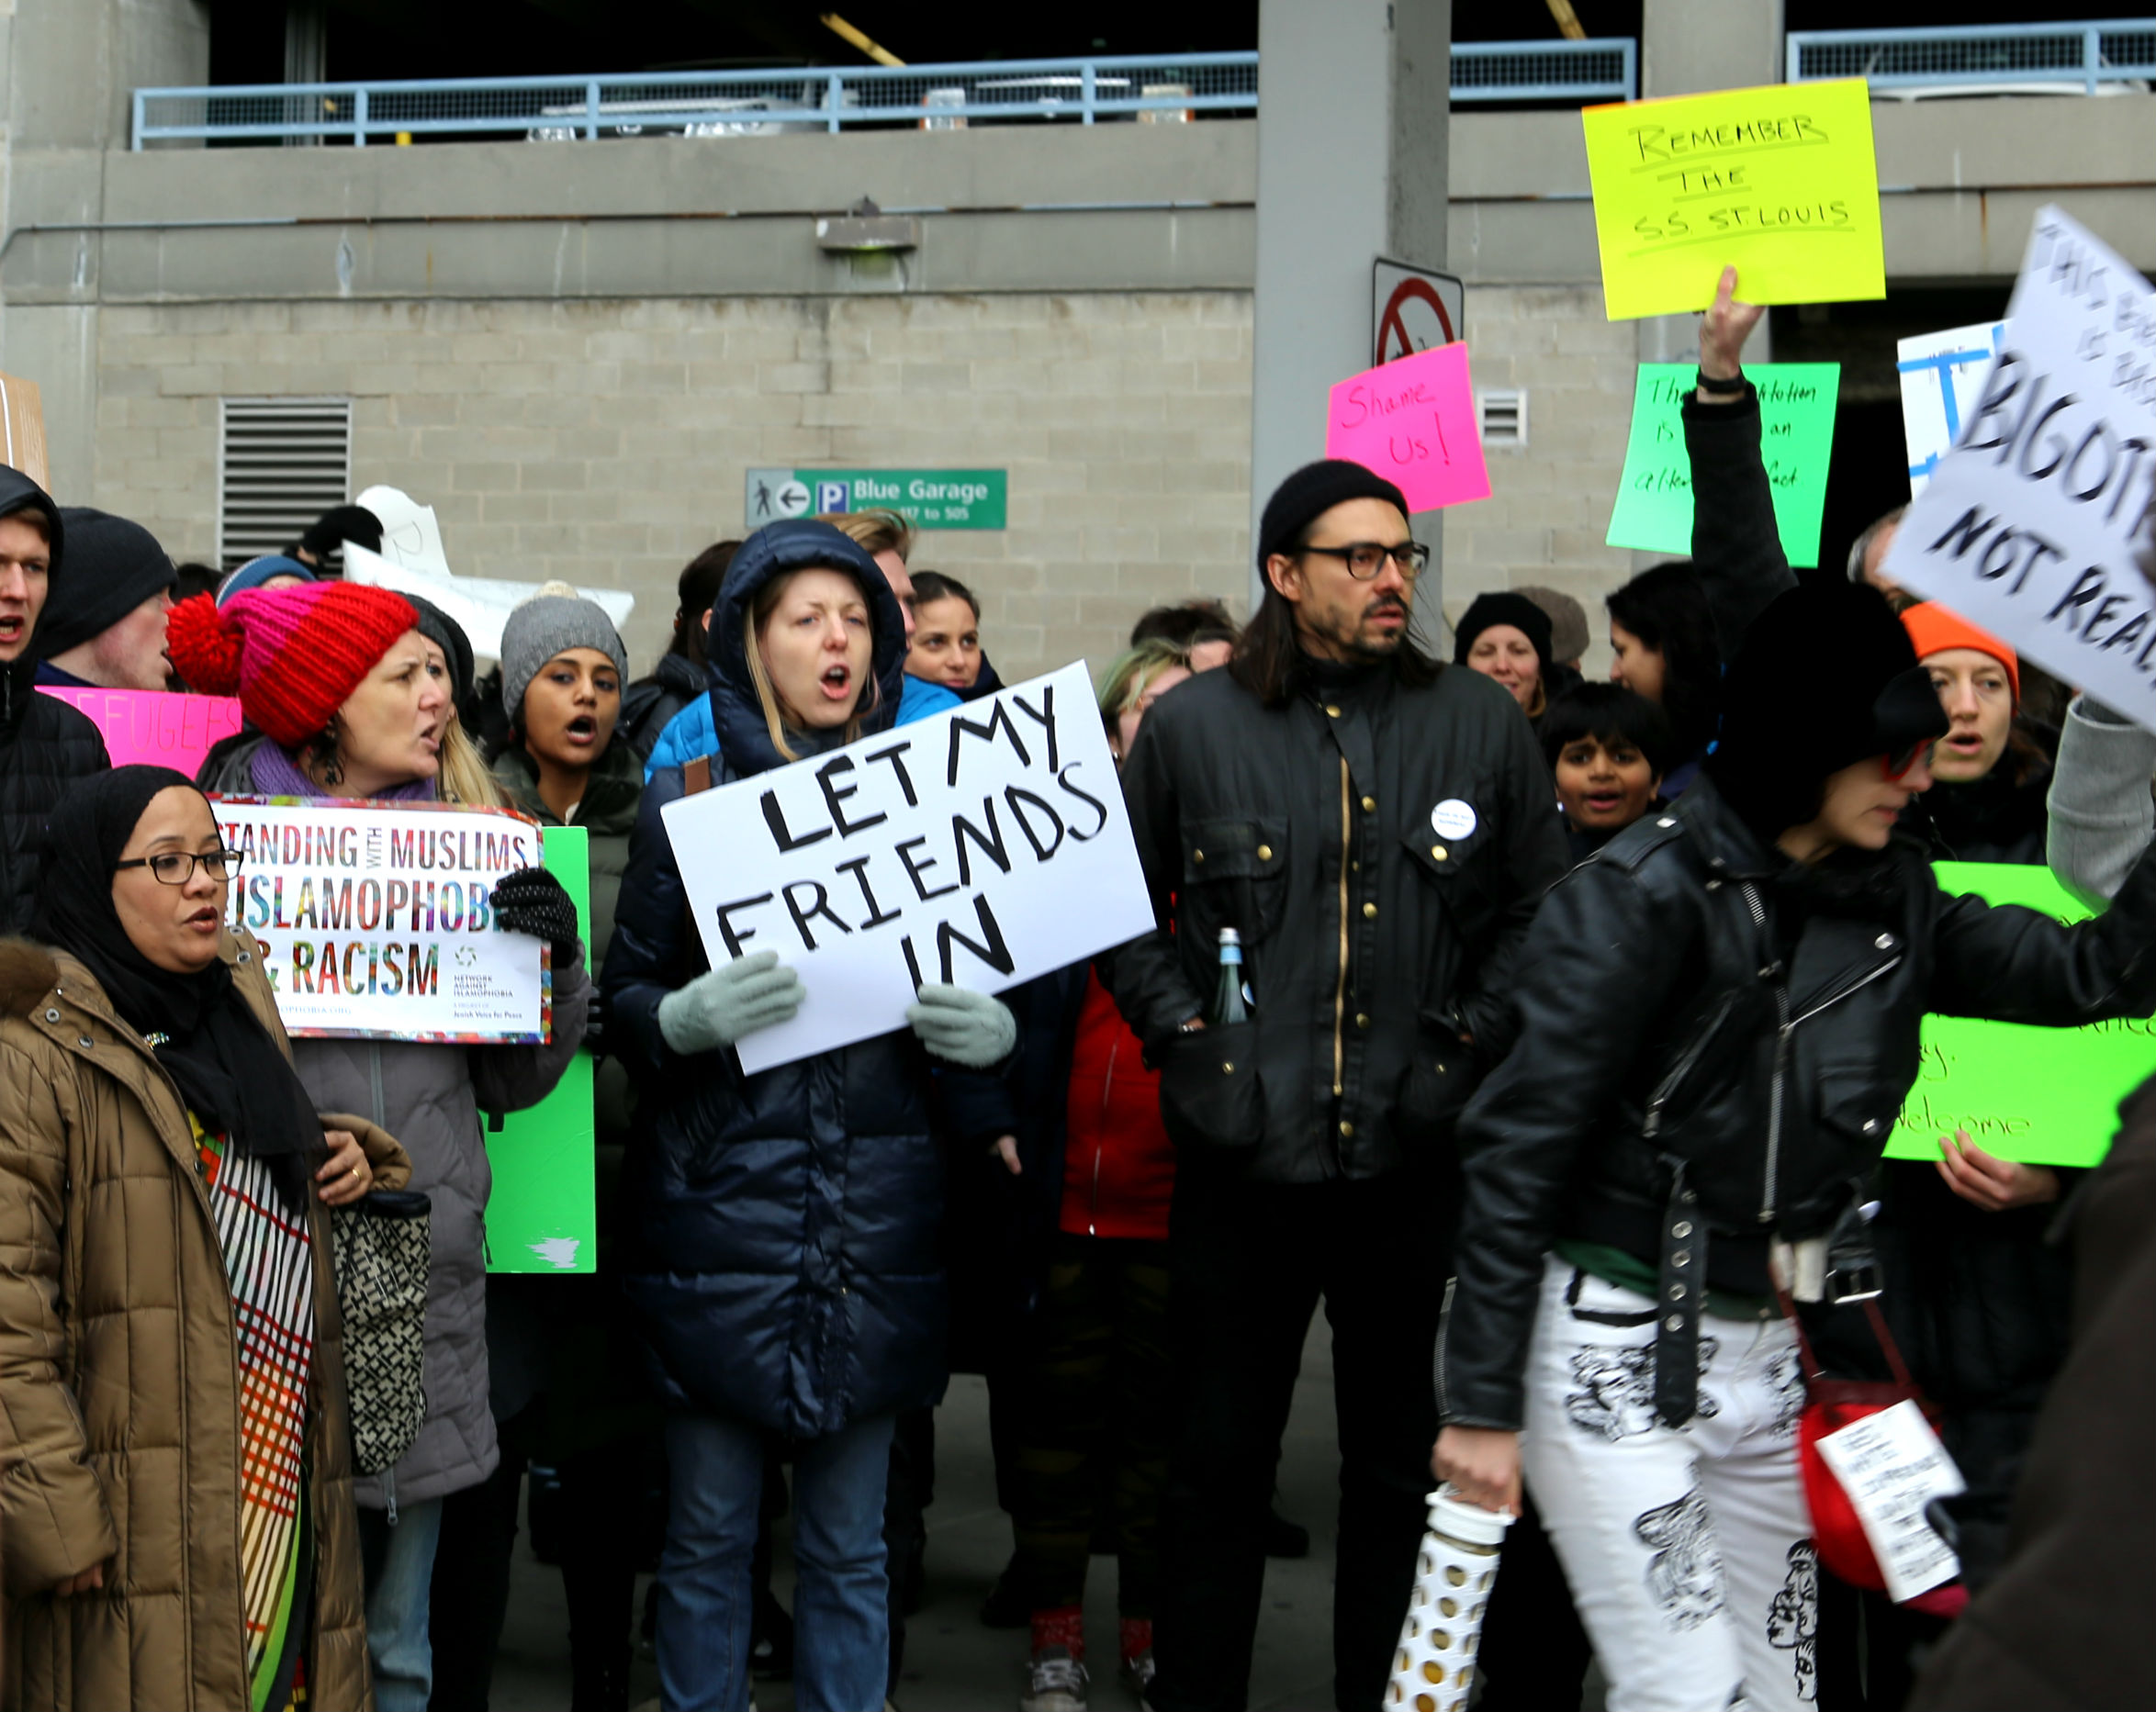 The protest began to grow after an immigrant advocacy group put a call-out for demonstrators on social media. Photo By Micheal D. Regan/PBS NewsHour